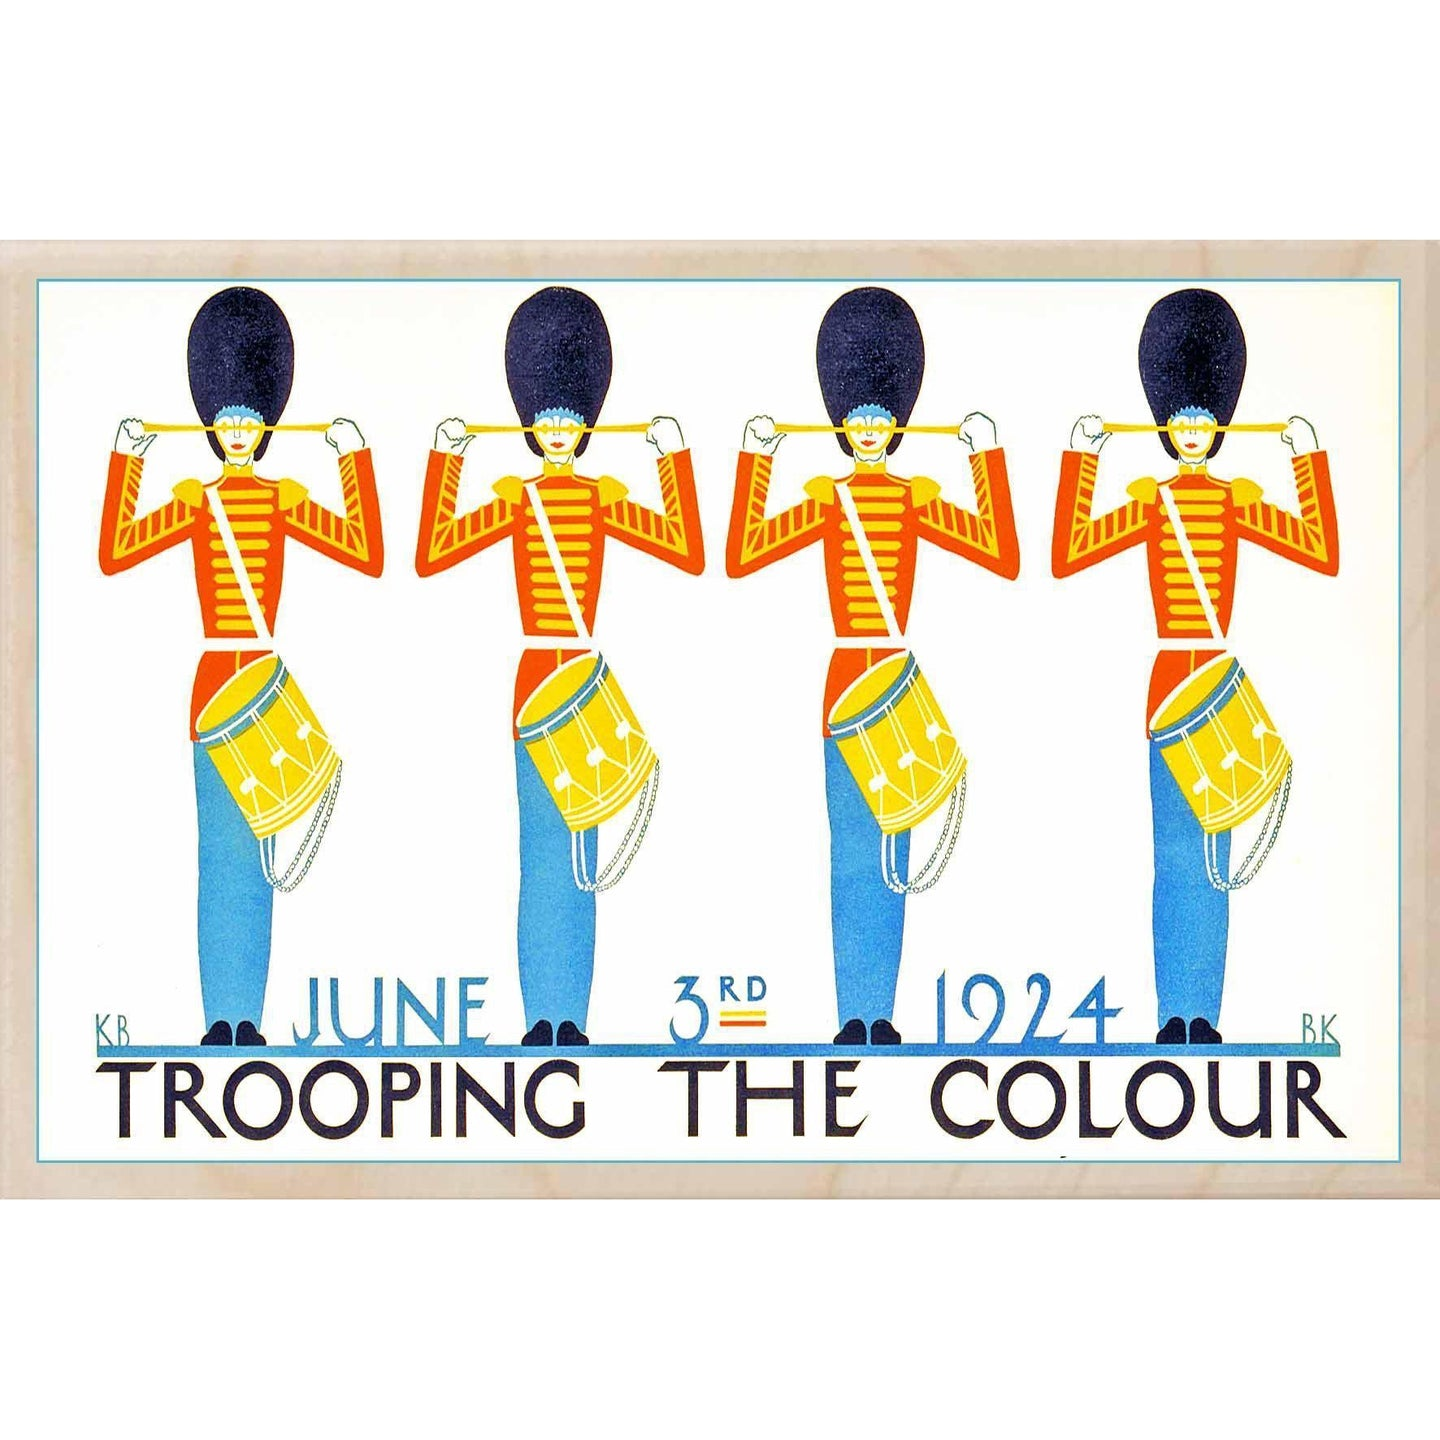 TROOPING THE COLOUR 1924-[wooden_postcard]-[london_transport_museum]-[original_illustration]THE WOODEN POSTCARD COMPANY